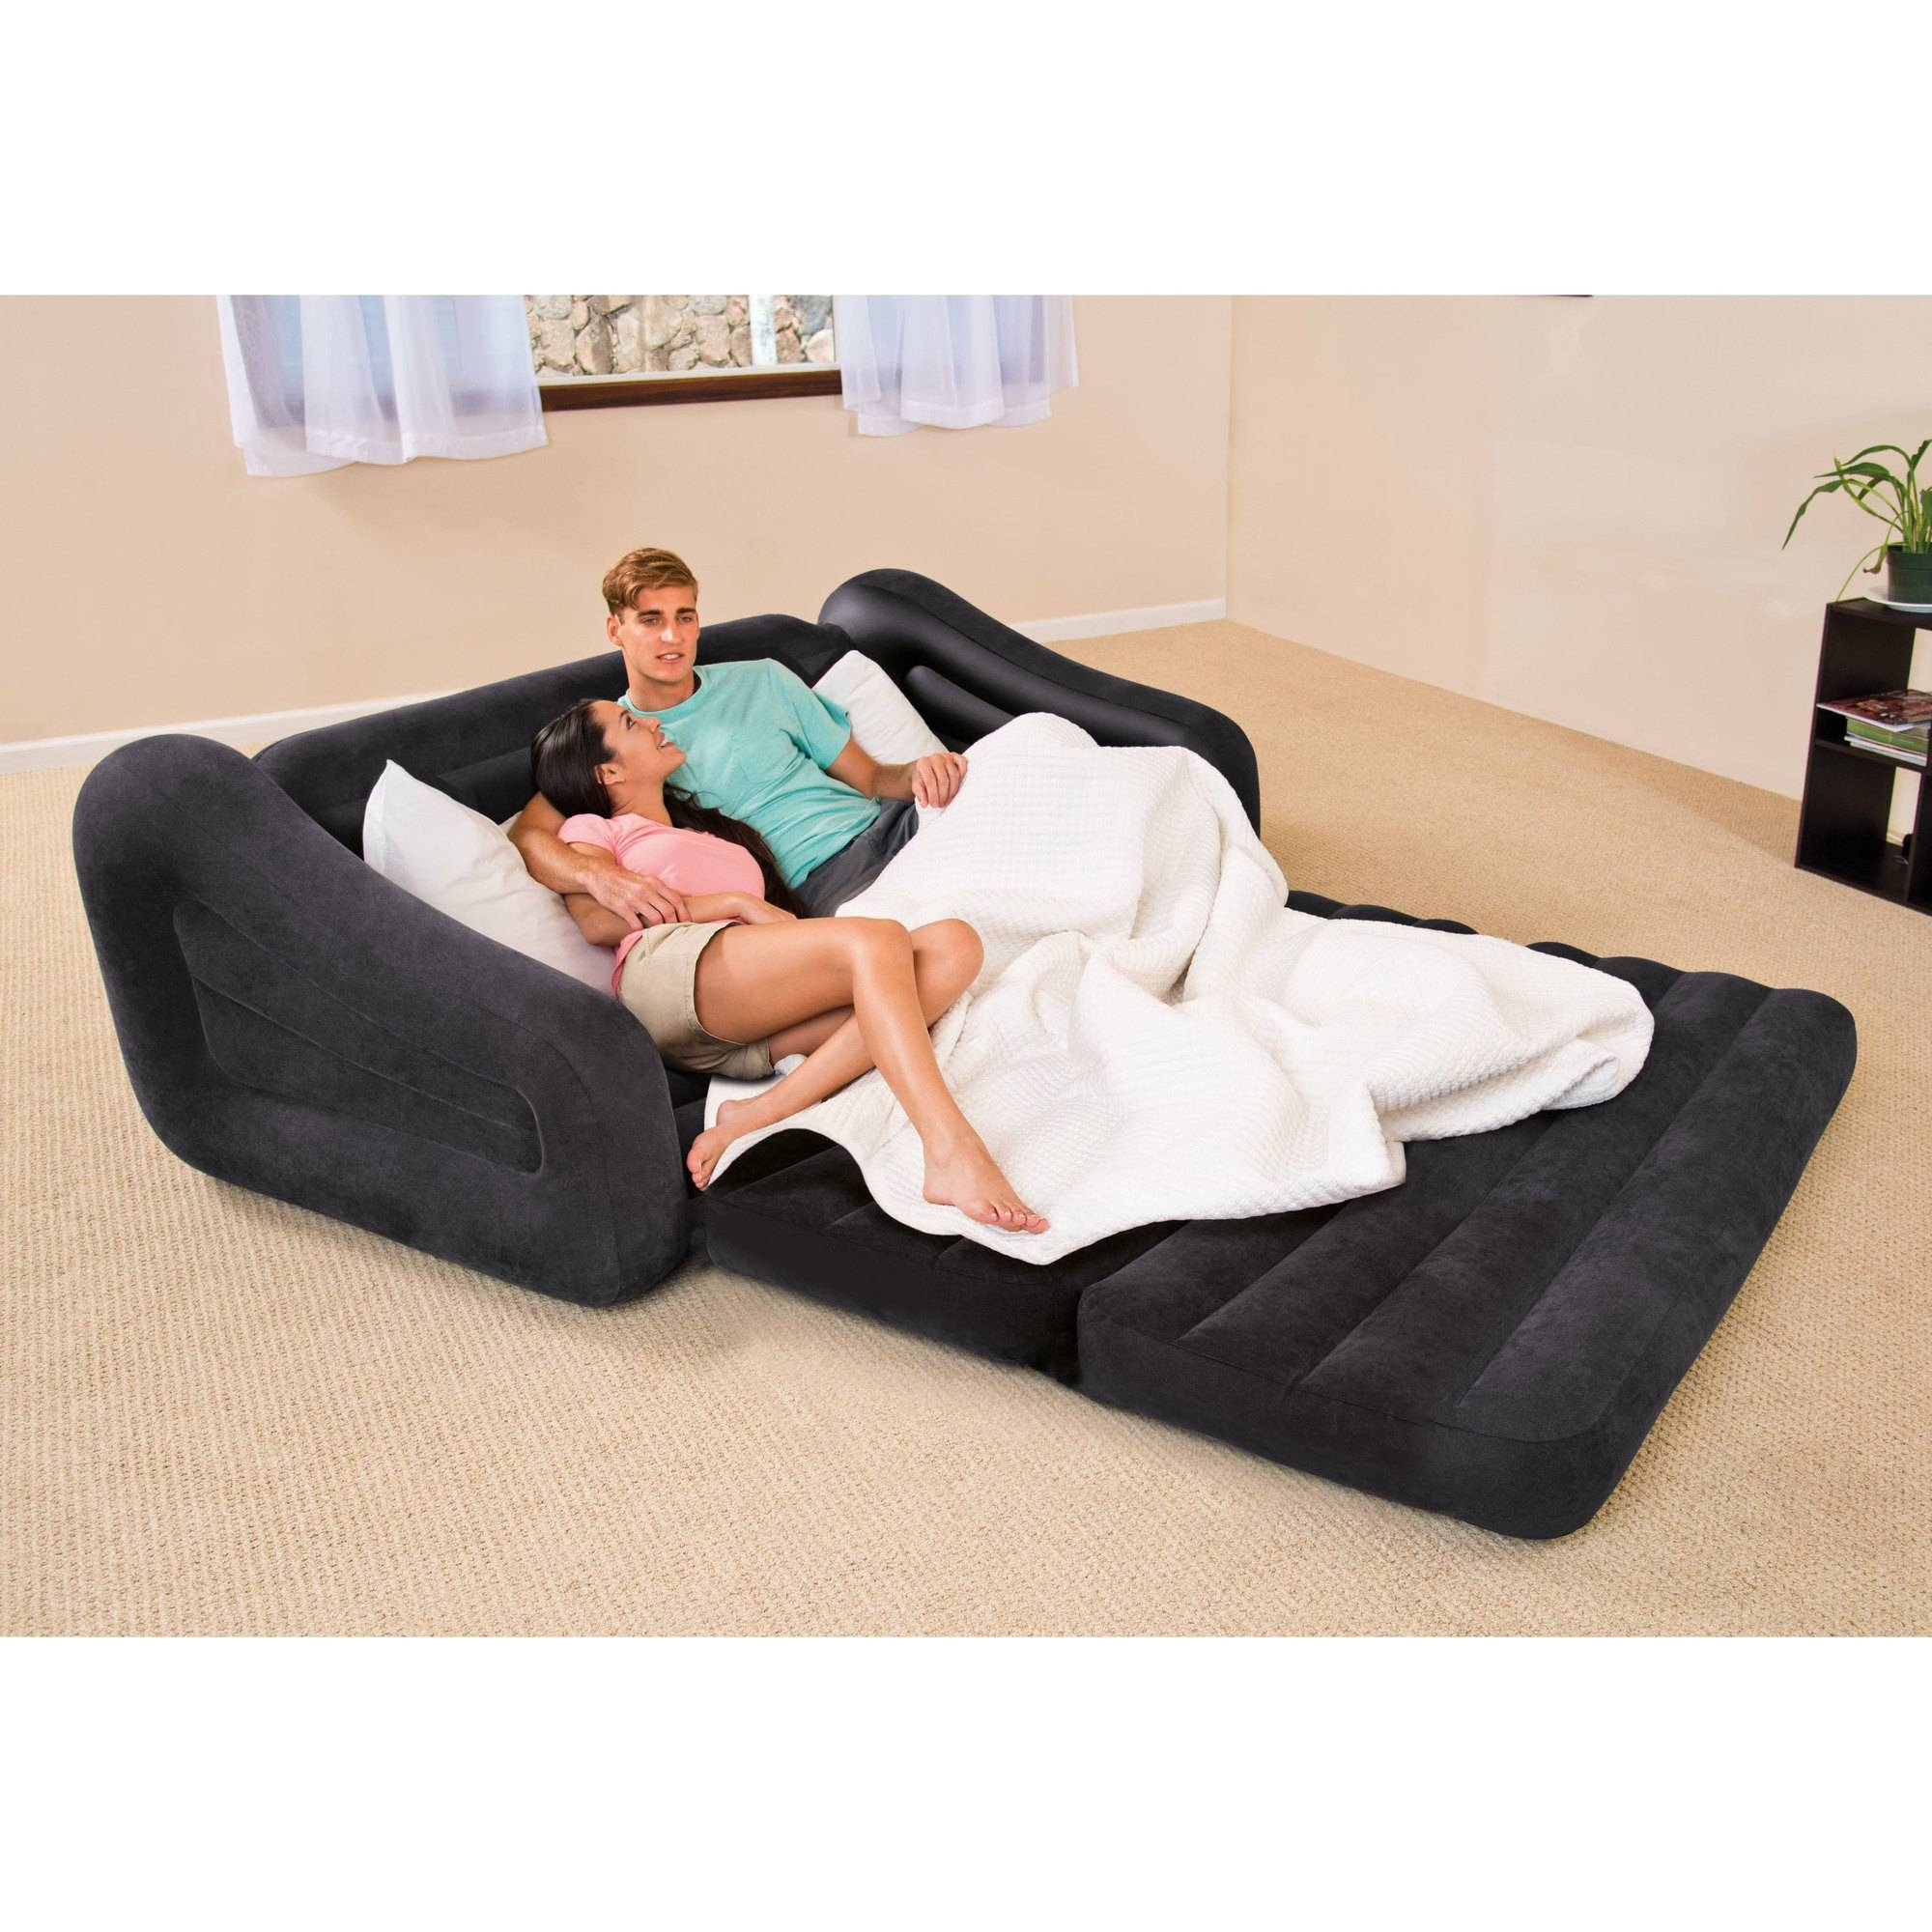 Intex Queen Inflatable Pull Out Sofa Bed - Walmart in Sofa Beds Queen (Image 17 of 30)